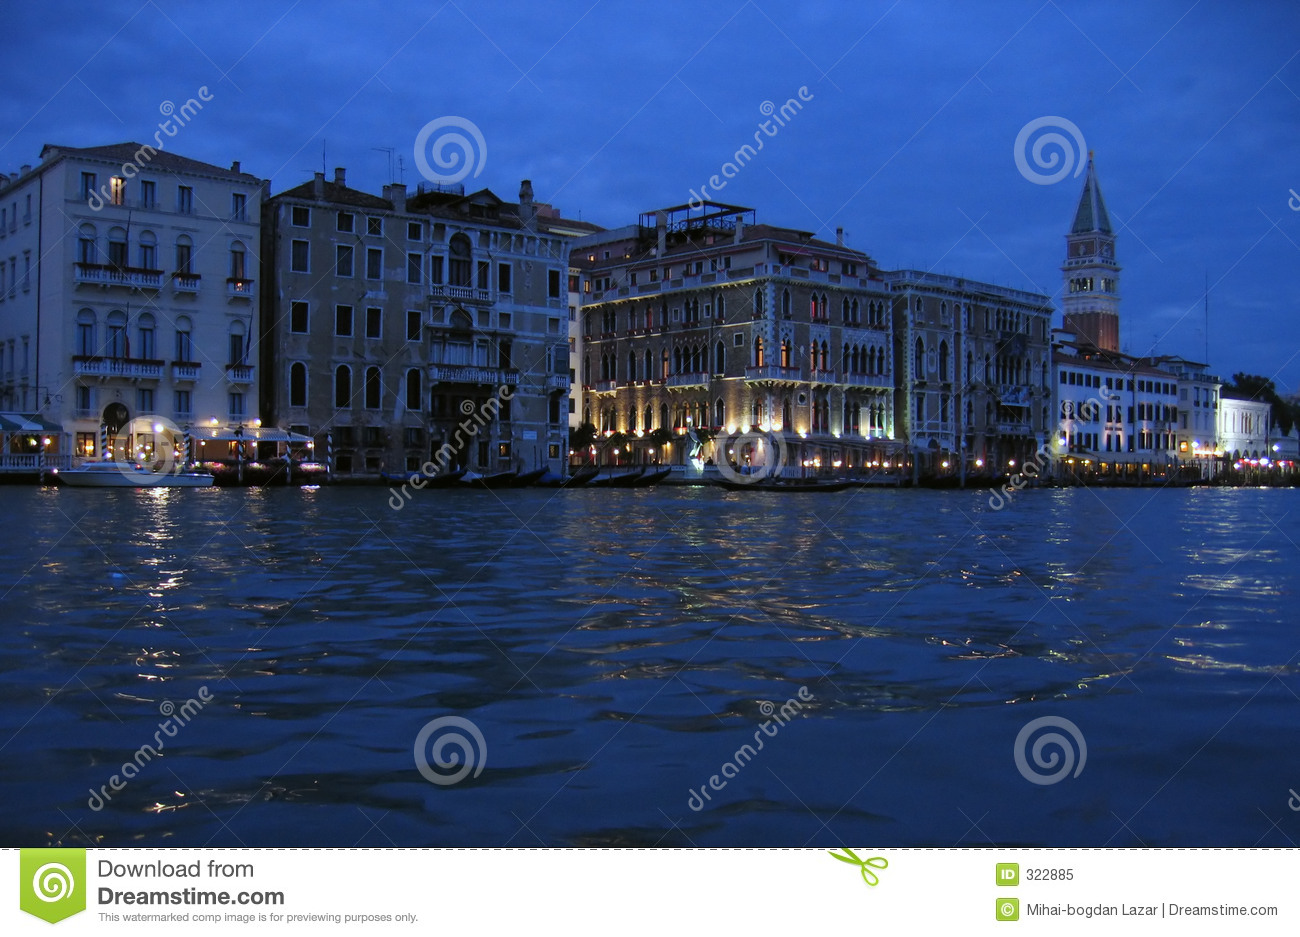 The Grand Canal at night – Venice, Italy